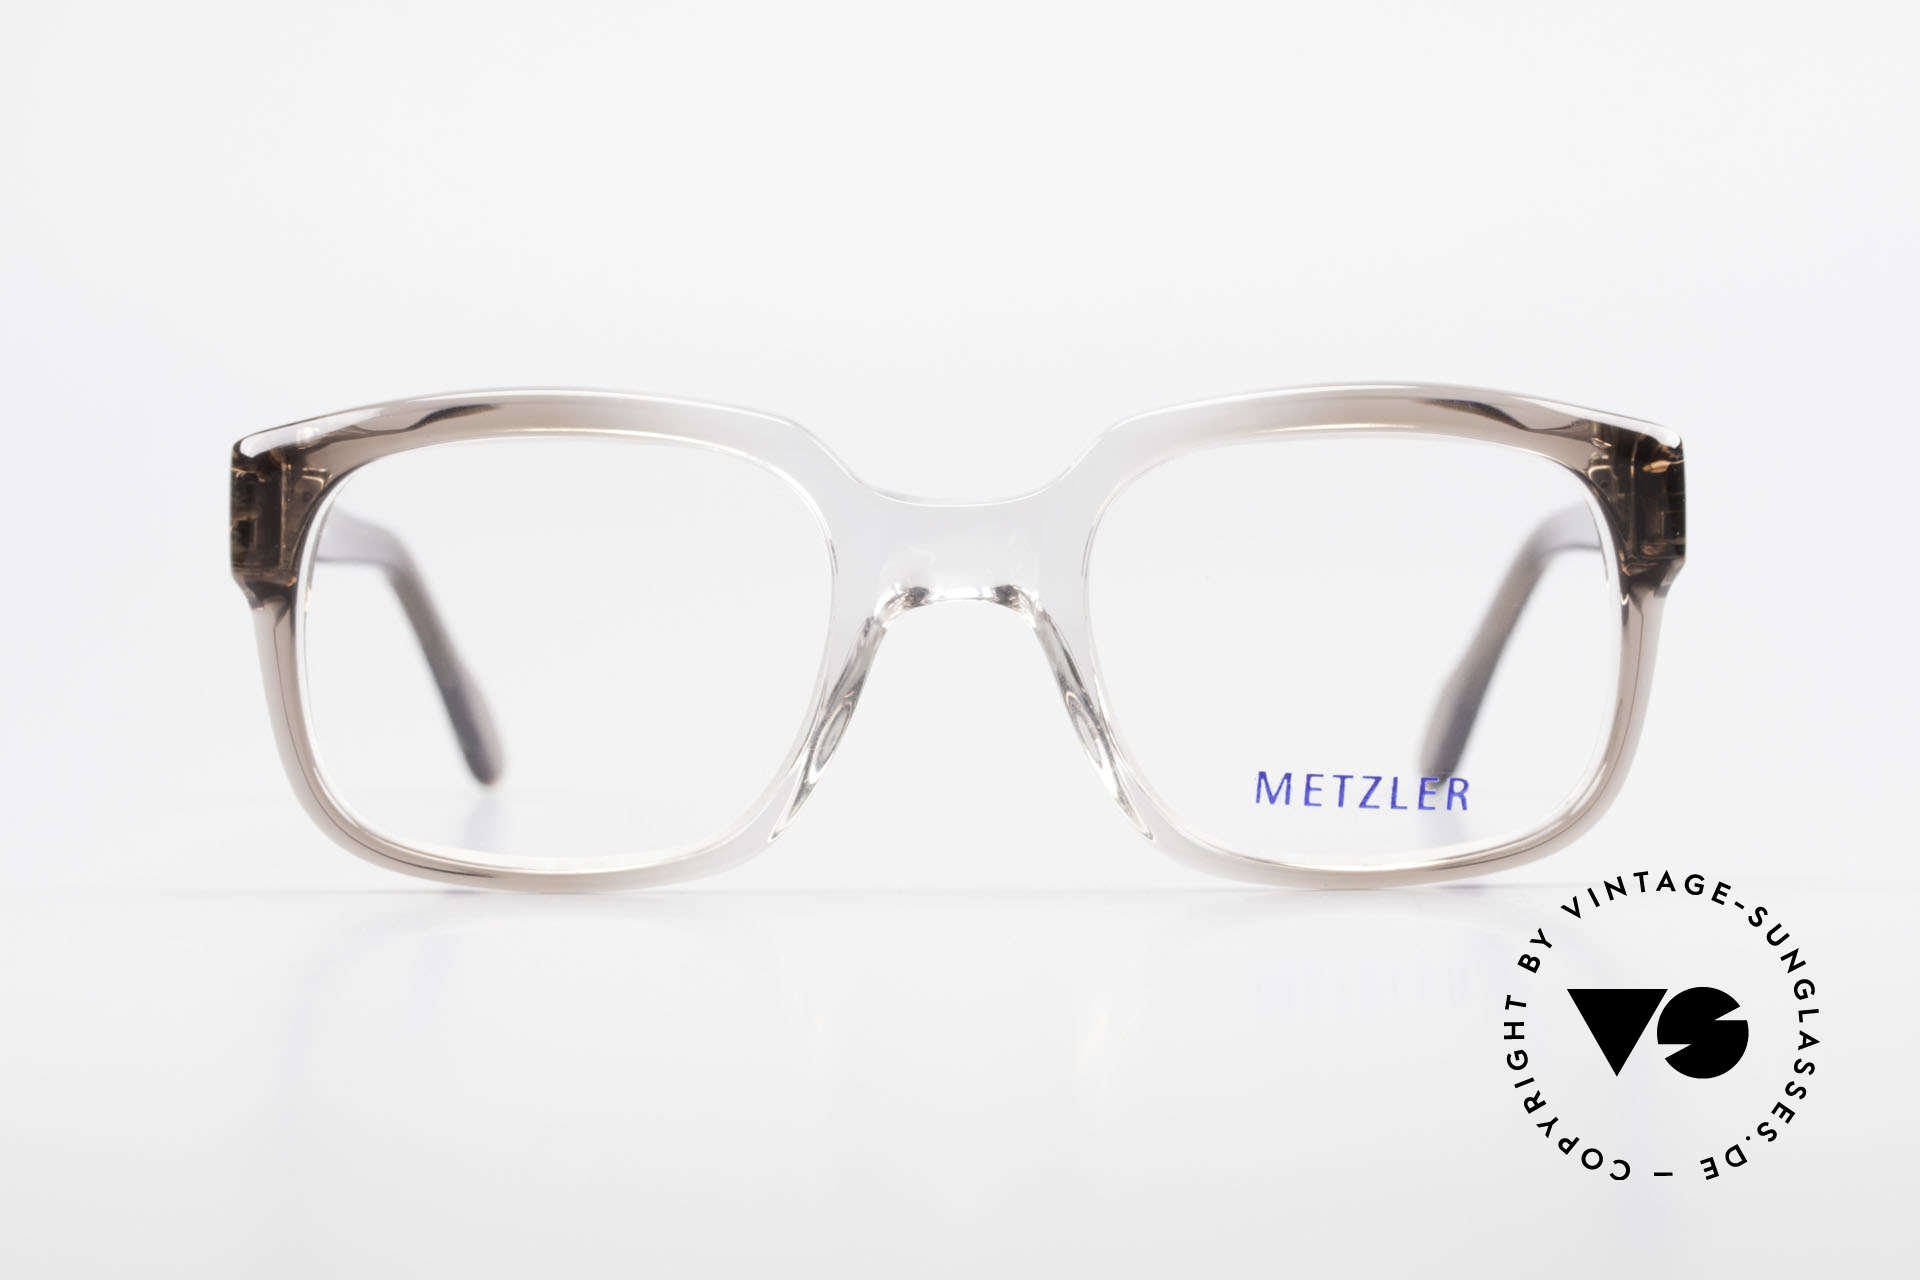 Metzler 7665 Small 80's Old School Eyeglasses, genuine old original from the late 80's / early 90s, Made for Men